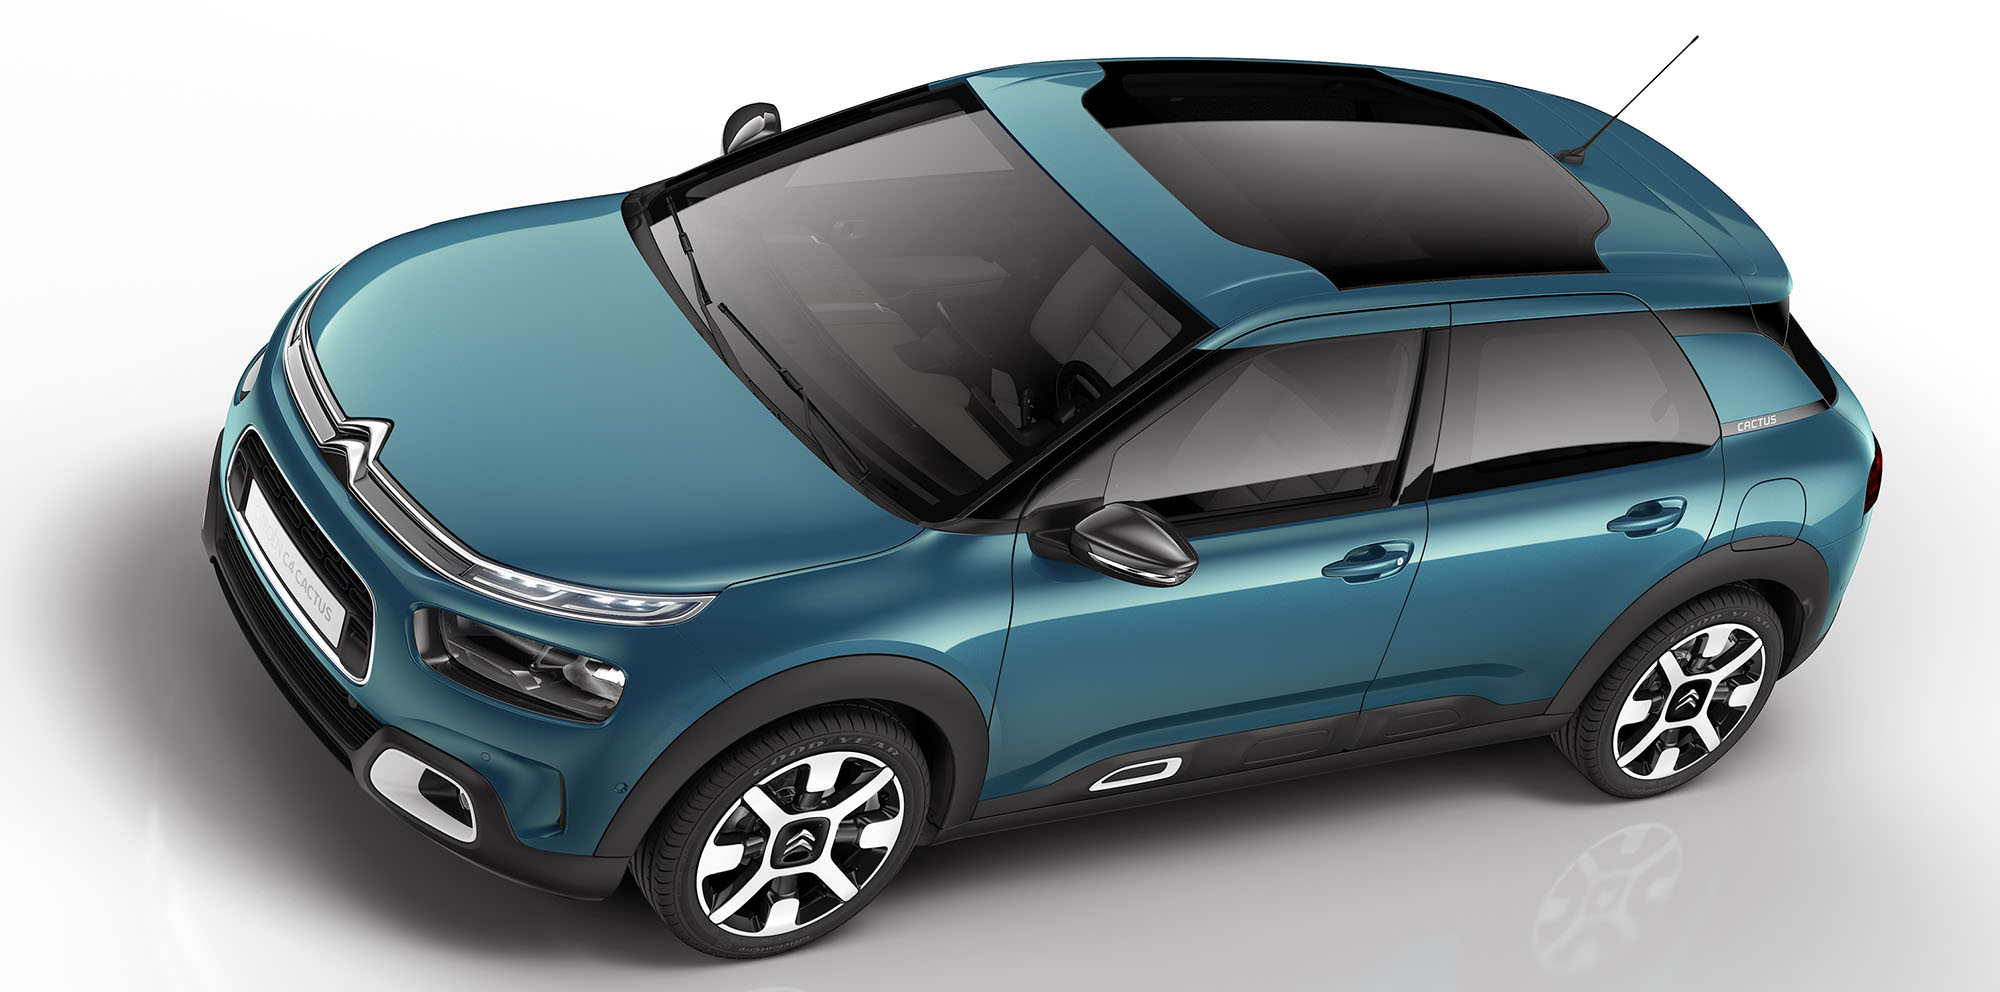 2019 citroen c4 cactus facelift unveiled photos. Black Bedroom Furniture Sets. Home Design Ideas